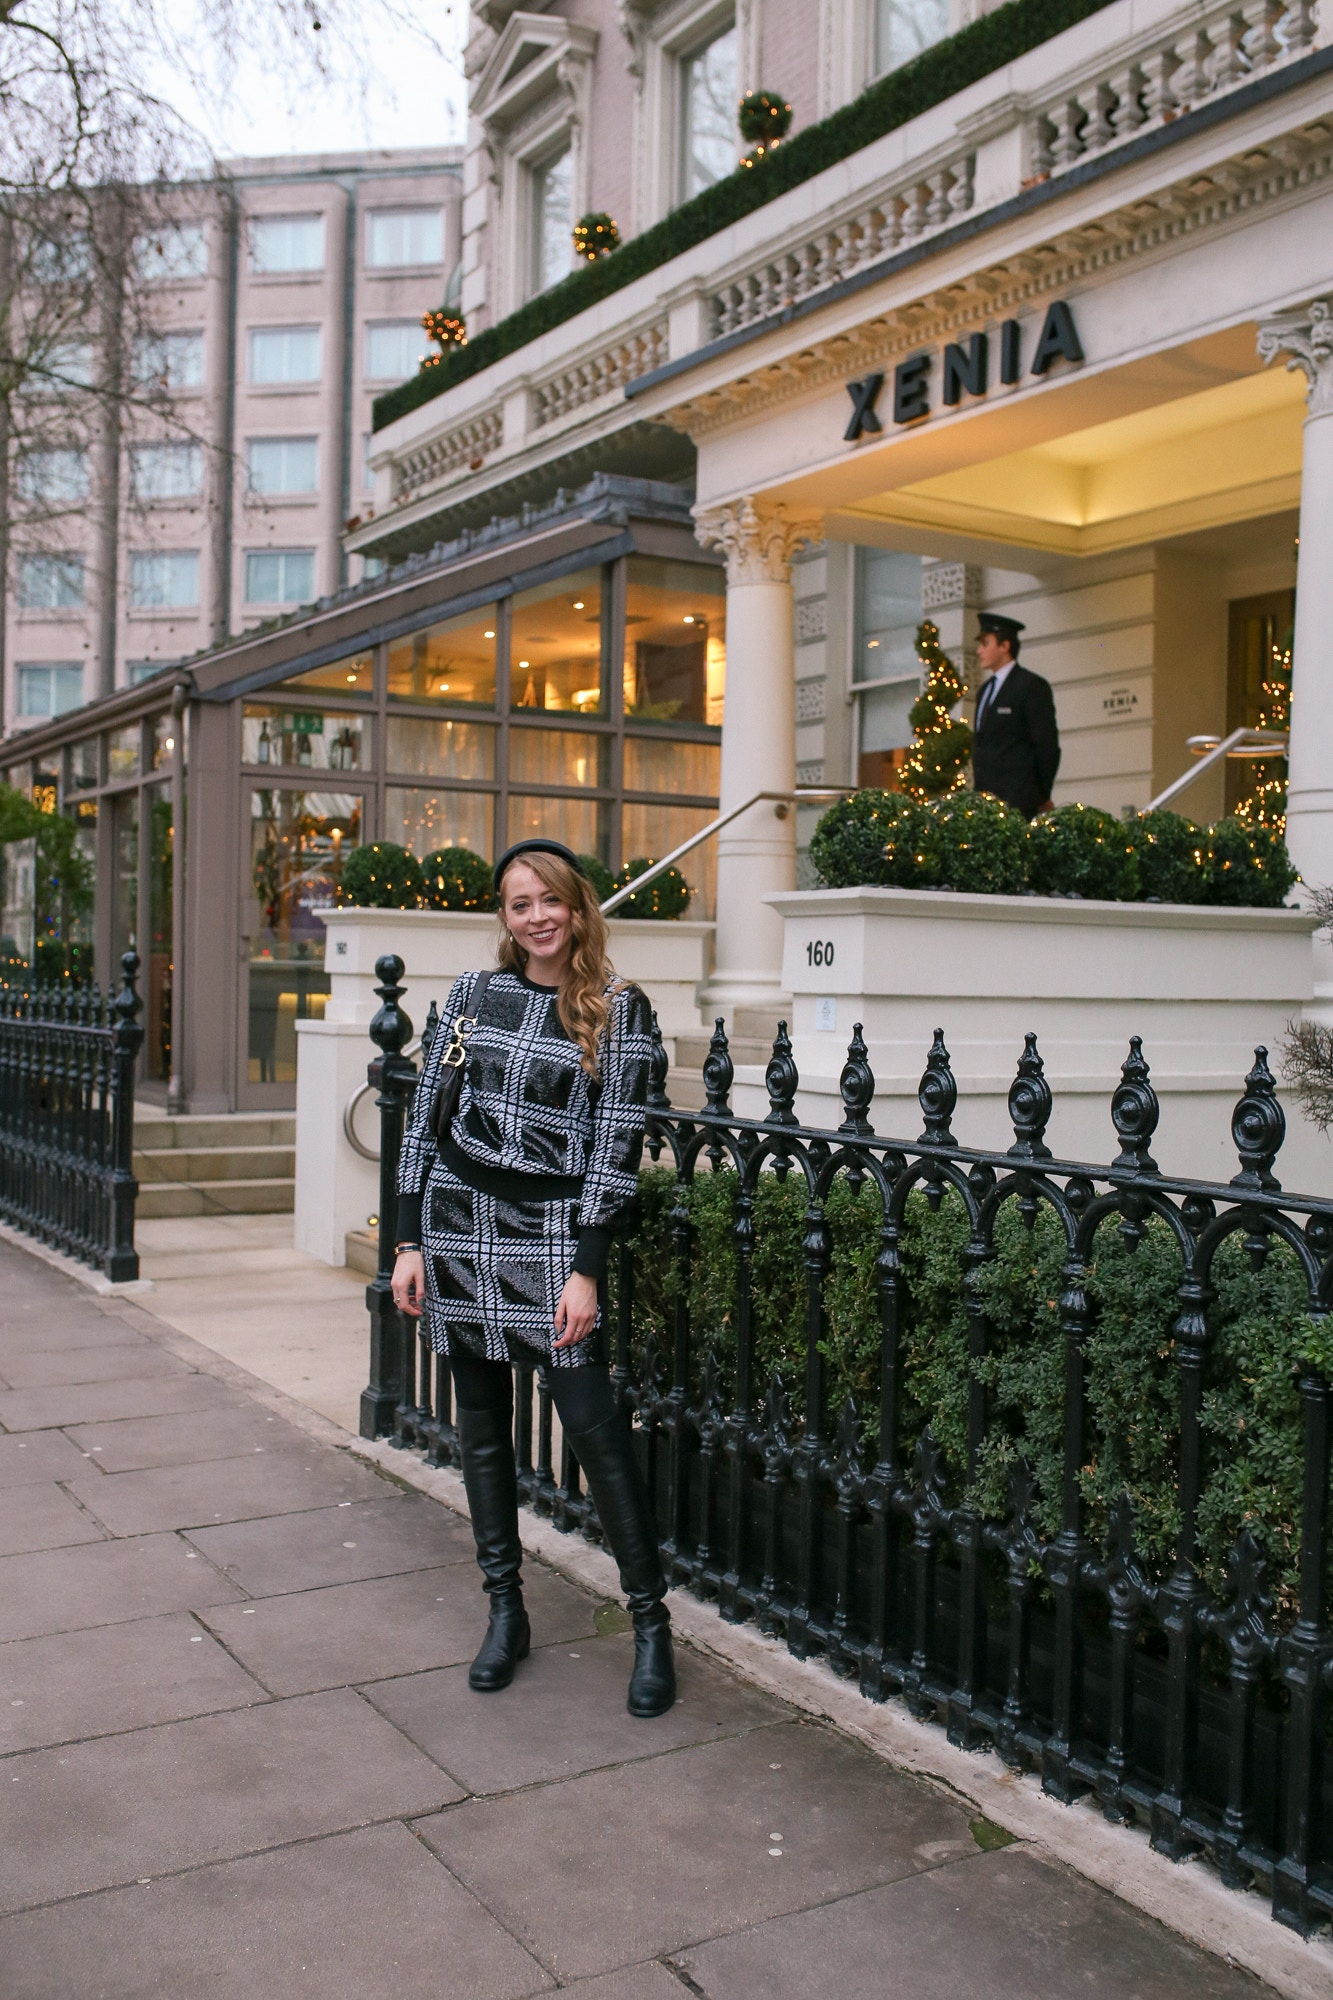 Hotel Xenia Autograph Collection London Review: I stayed here for 3 nights with my best friend and loved the location, charming decor and friendly service.